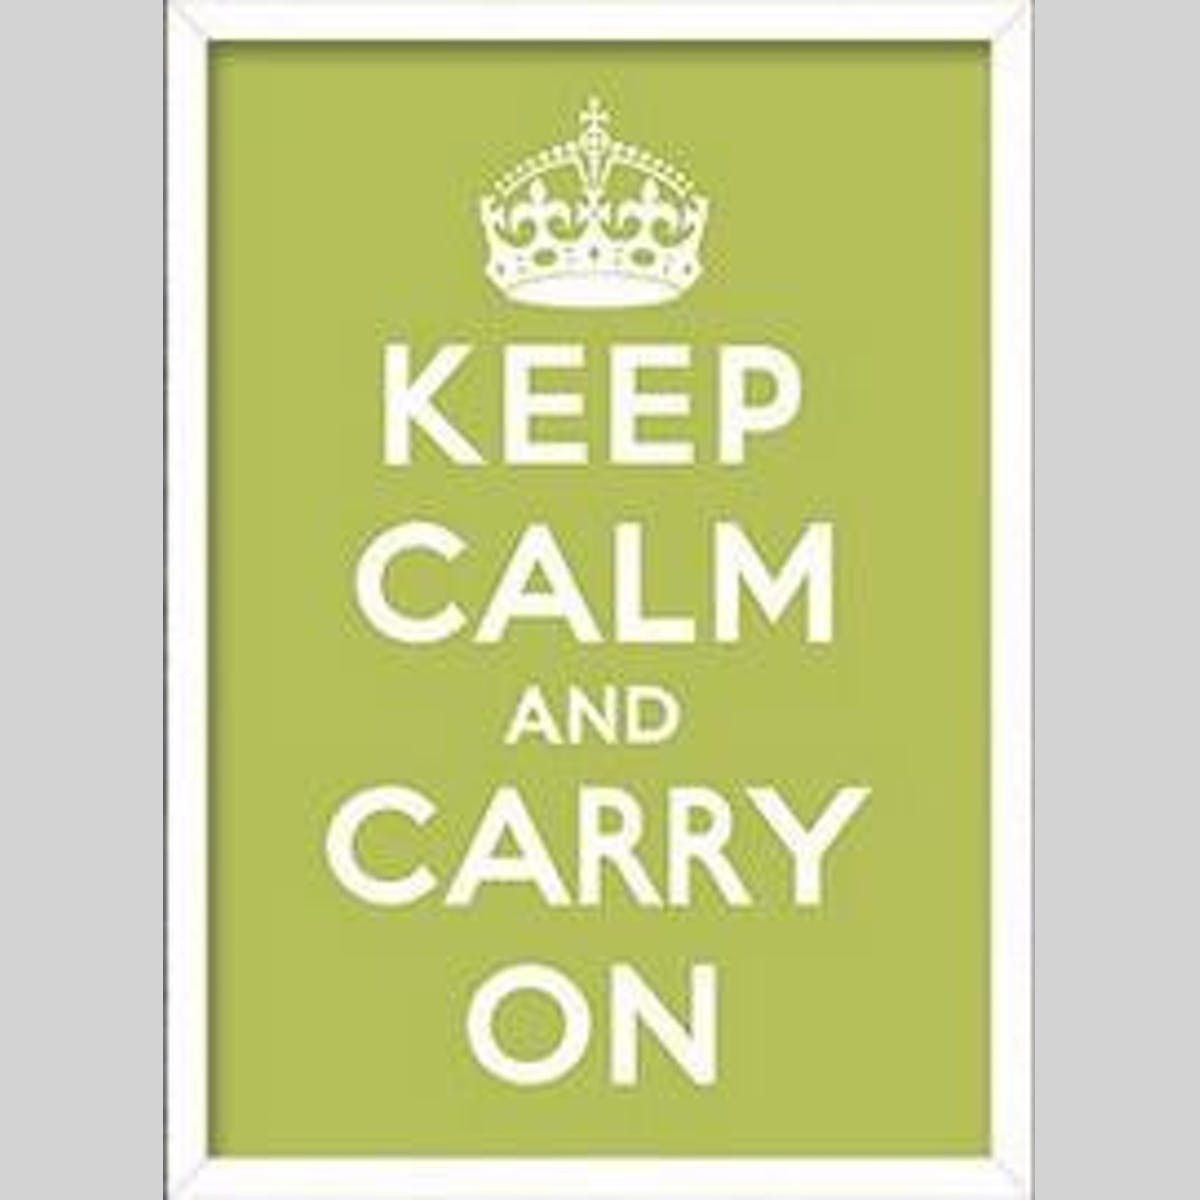 Keep Calm And Carry On   Products   Pinterest   Products